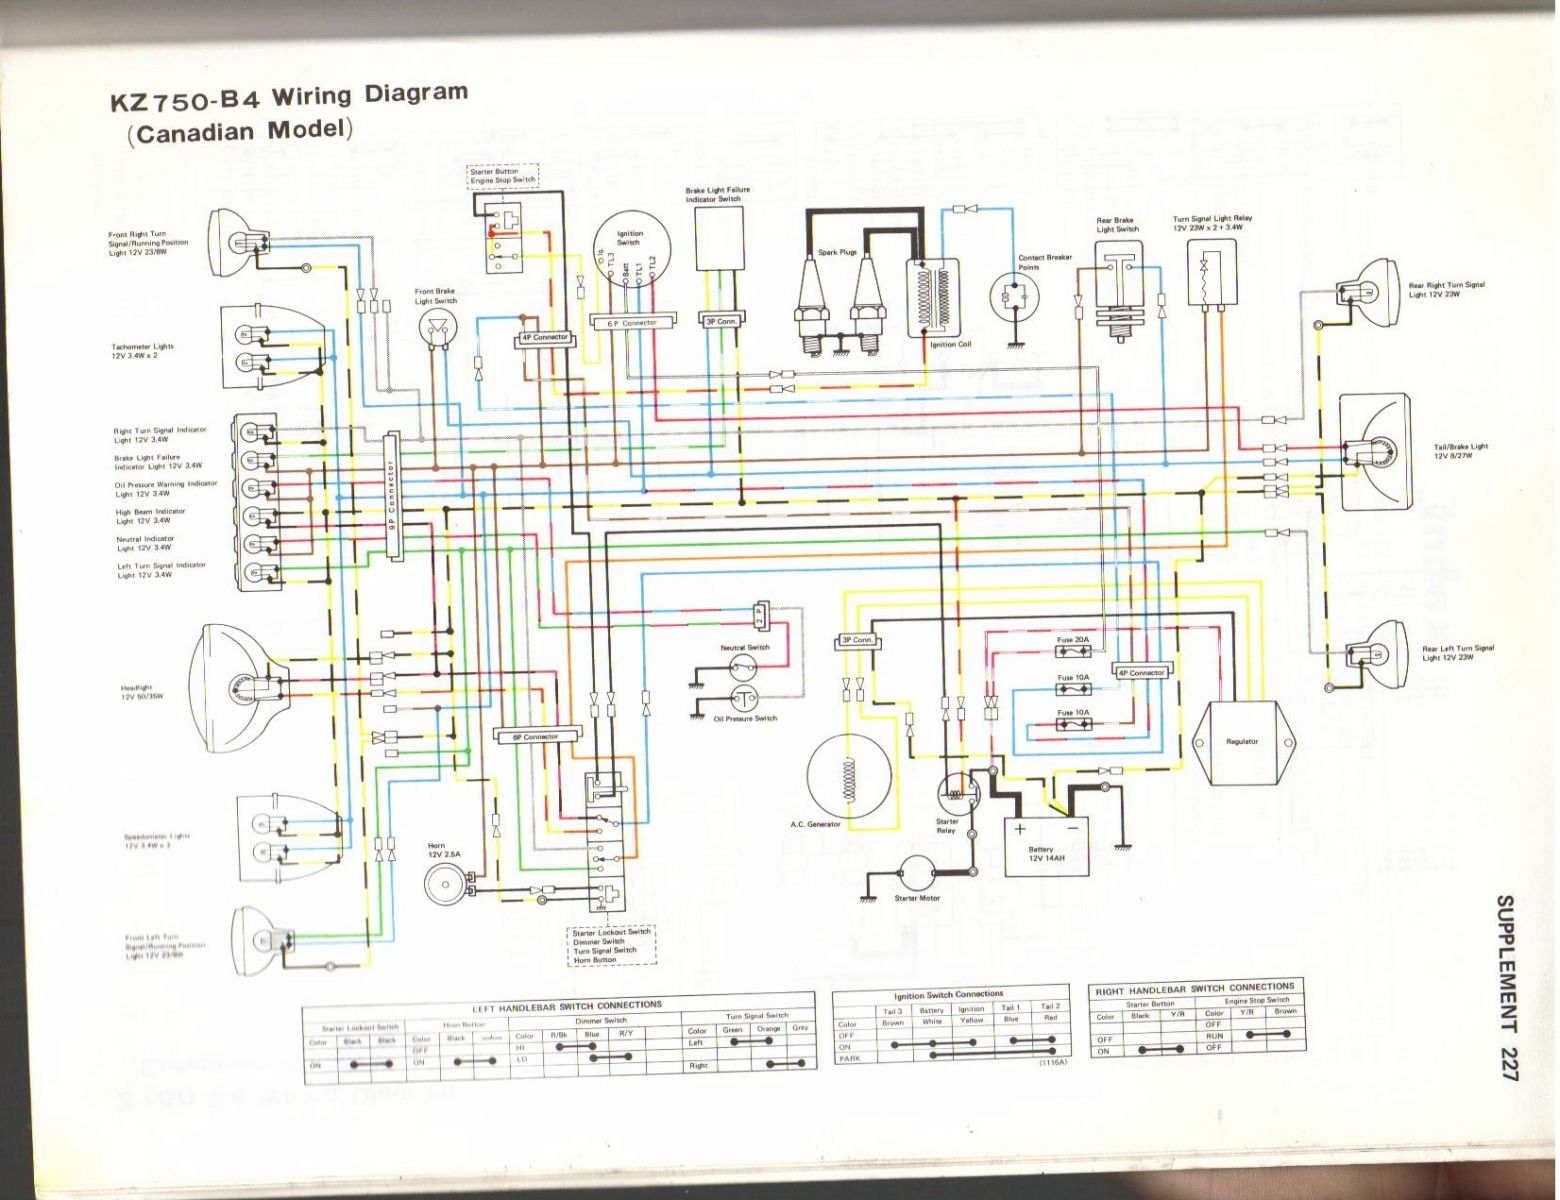 kz750b4wiringdiagram 1976 kz 750 need help! wiring harness kzrider forum kzrider 81 kz440 wiring diagram at bakdesigns.co